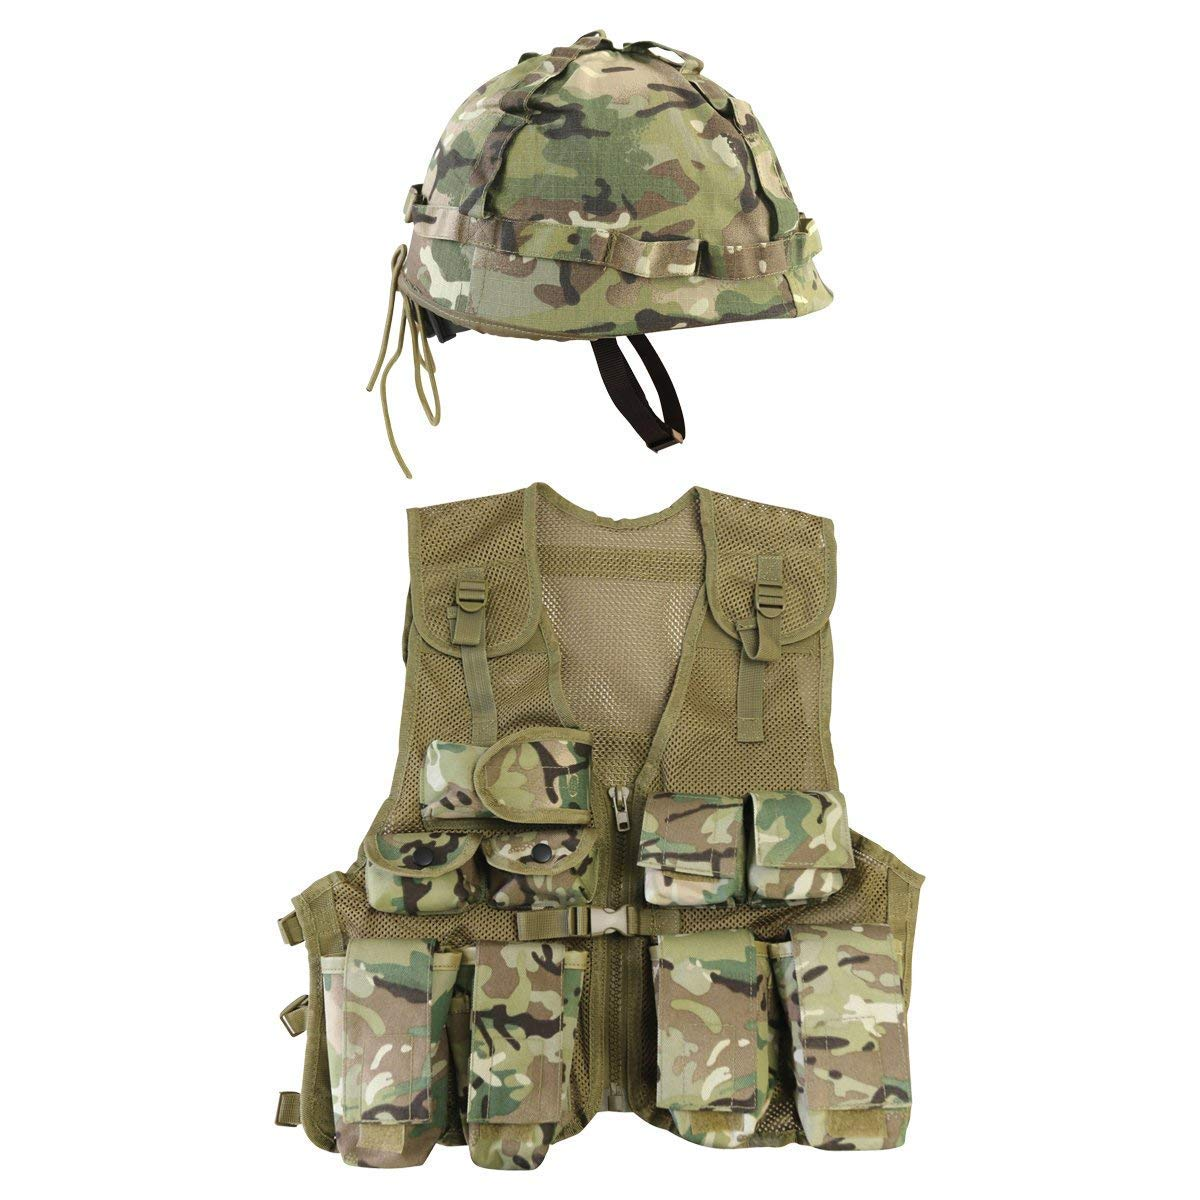 Kids Multi Cam Combat Vest & Camo Helmet, with Free Dog Tags, Fits Age 5-12